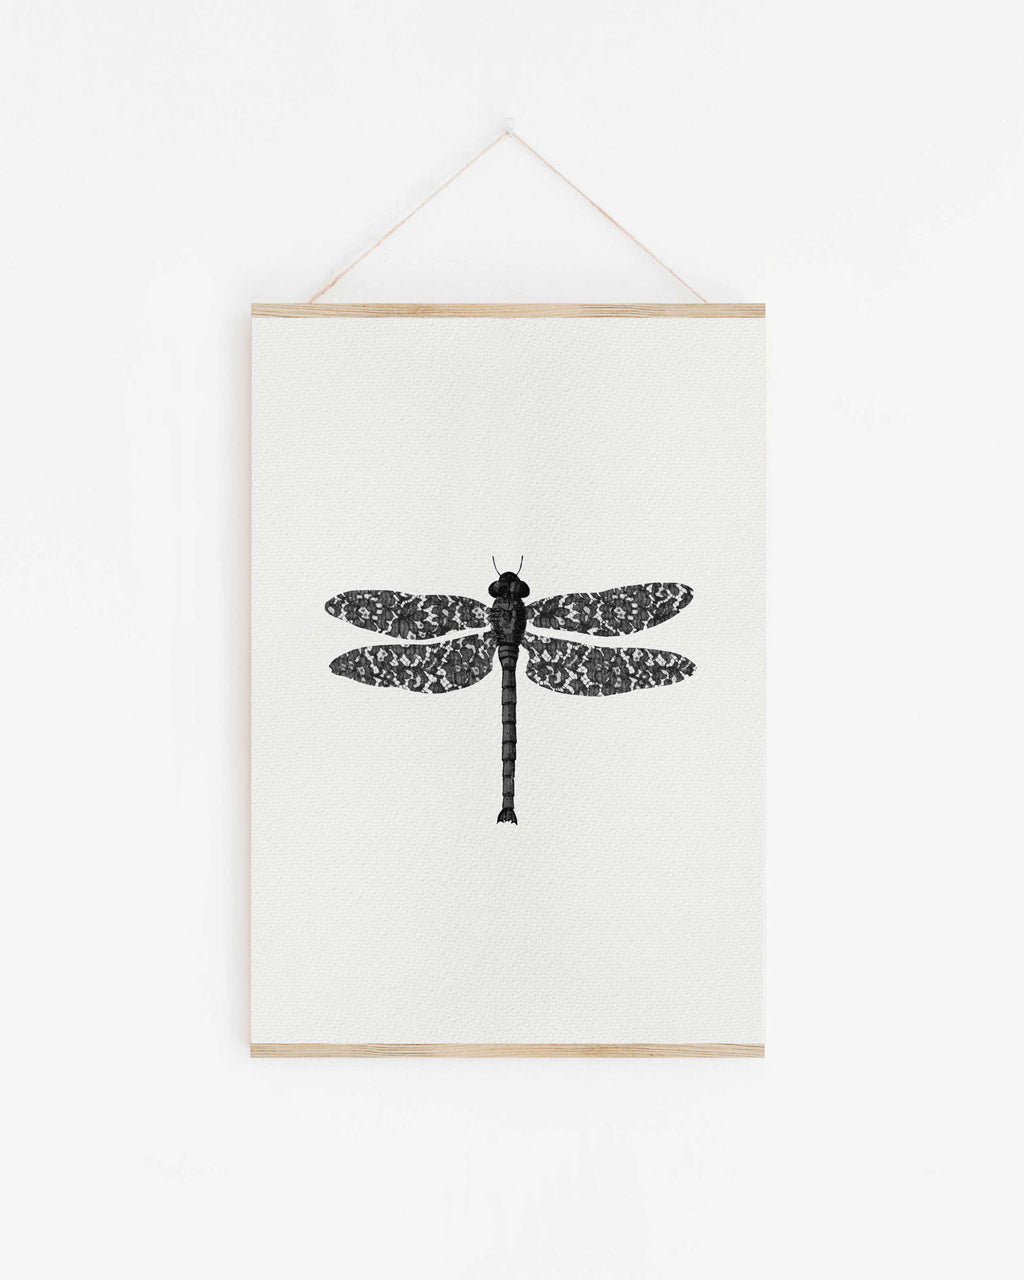 Lace Dragonfly - print of original illustration on watercolour paper